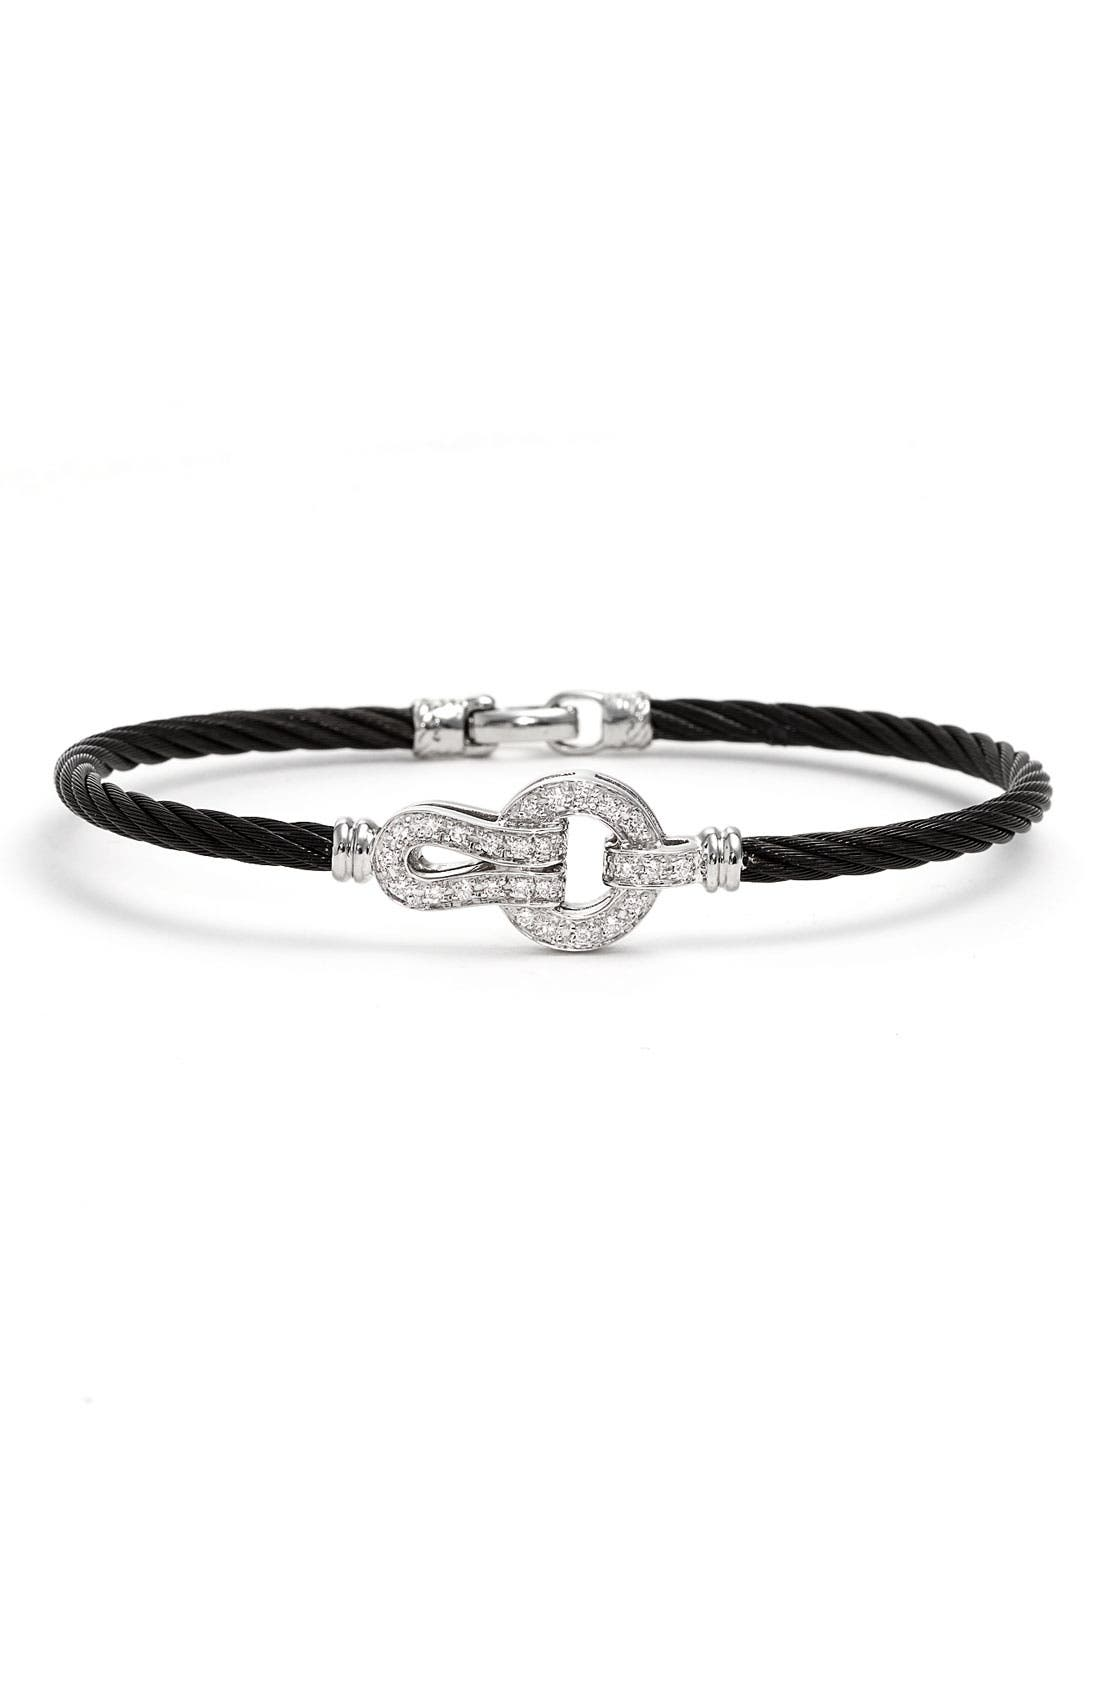 Main Image - ALOR® Circle Knot Diamond Bangle